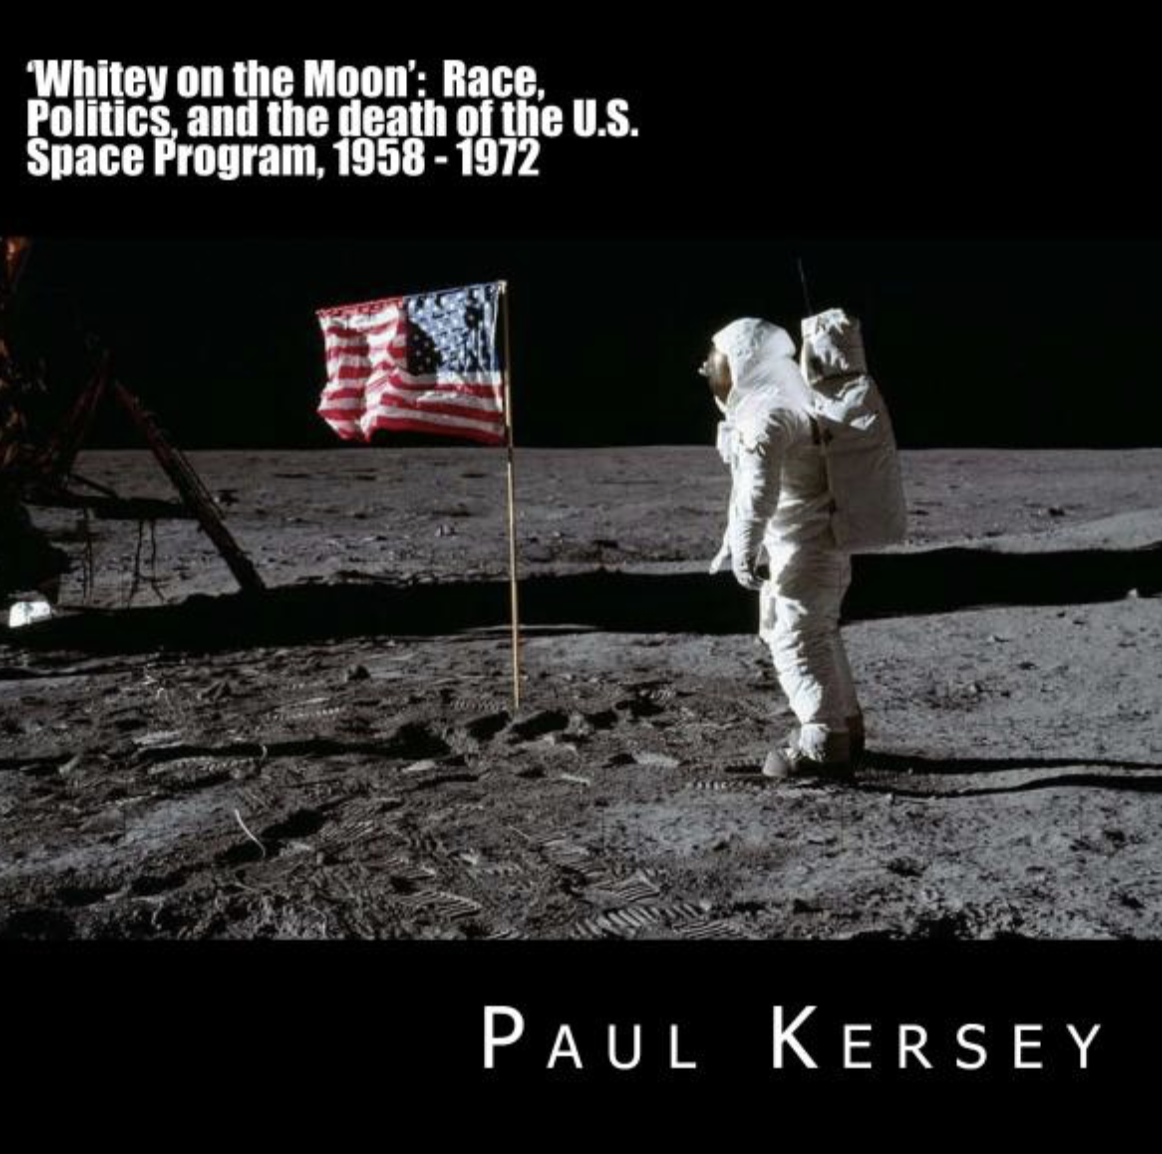 Whitey on the Moon